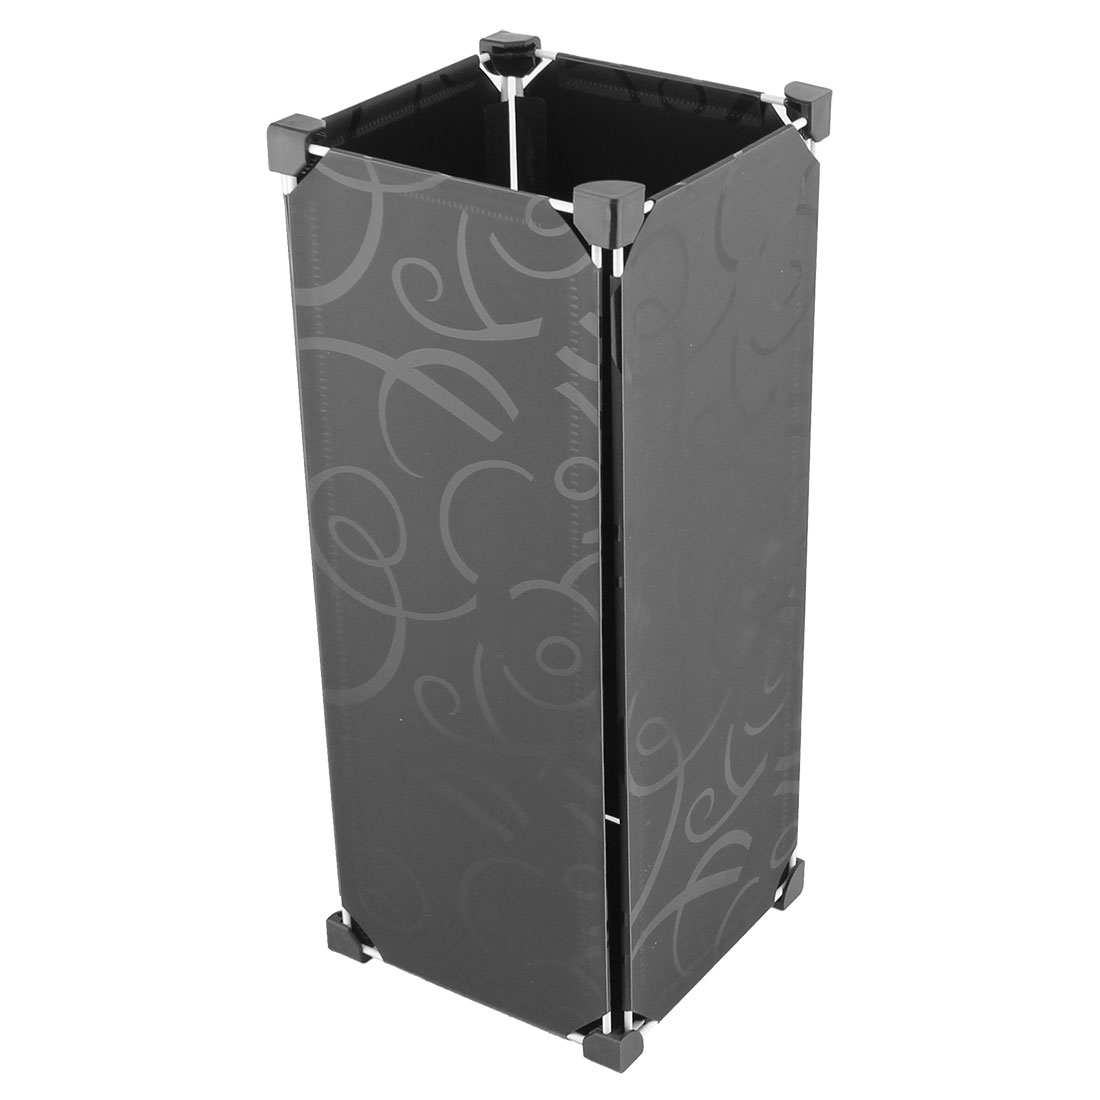 Office Household Removable Rectangular Shaped DIY Umbrella Stand Holder Container Black